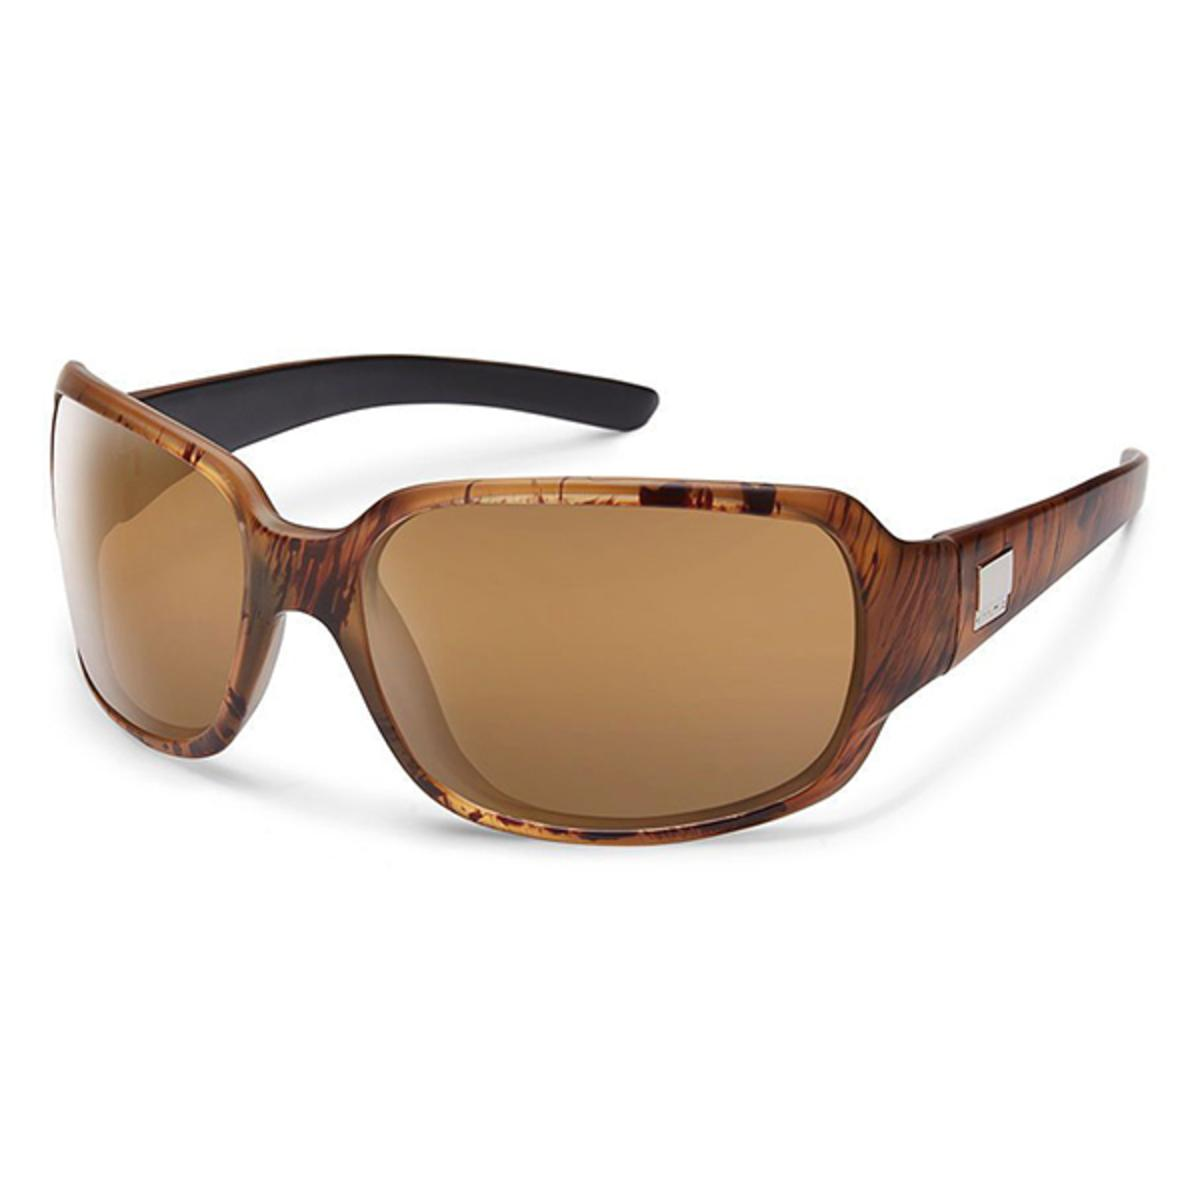 79a9f9fada Suncloud Injection Cookie MT Tortoise Backpaint Polarized Sienna Mirror  Sunglasses - The Warming Store